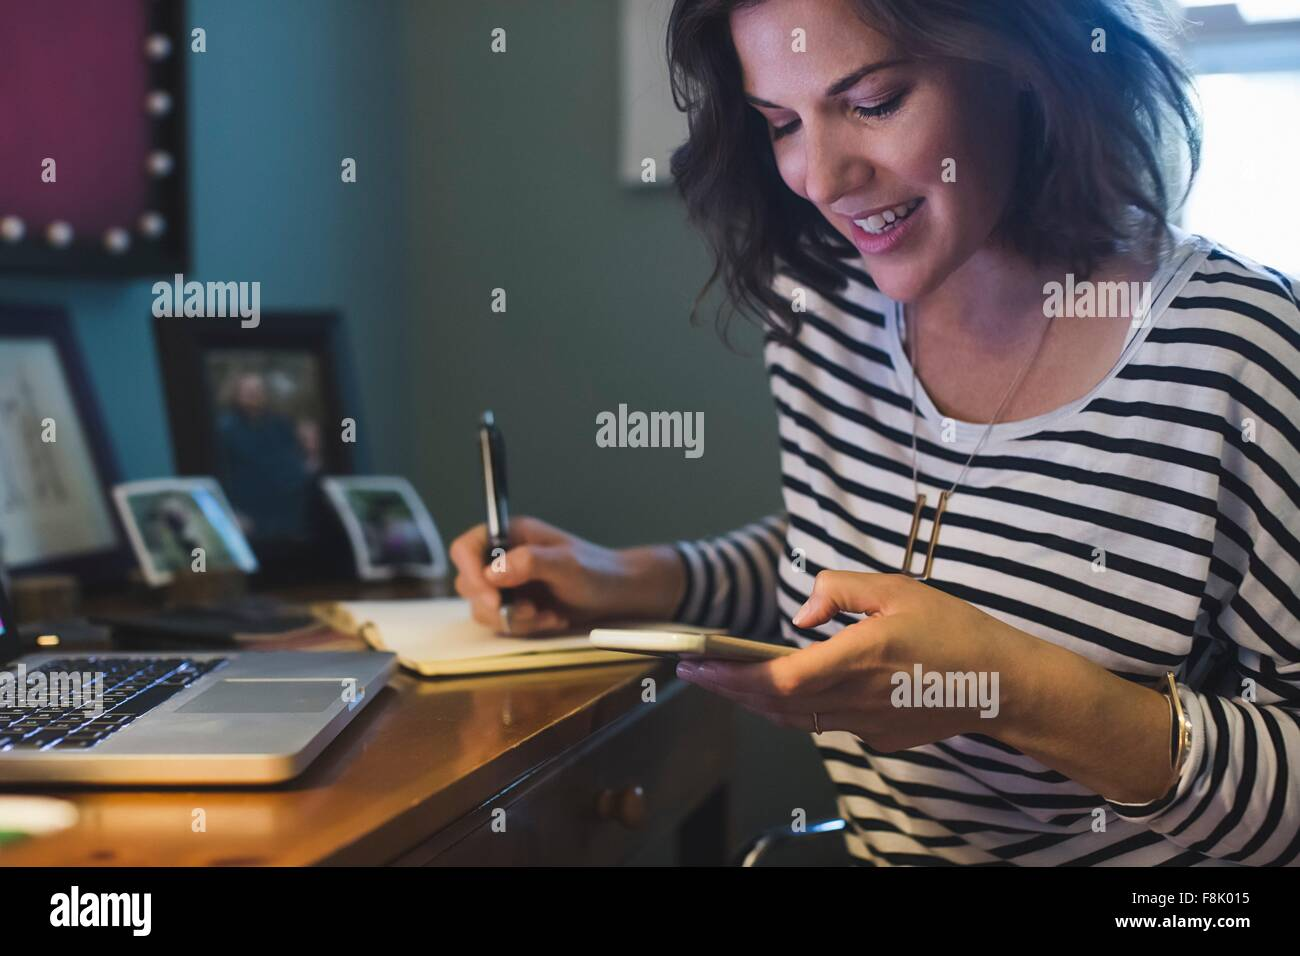 Mid adult woman at desk, holding smartphone, writing in book - Stock Image